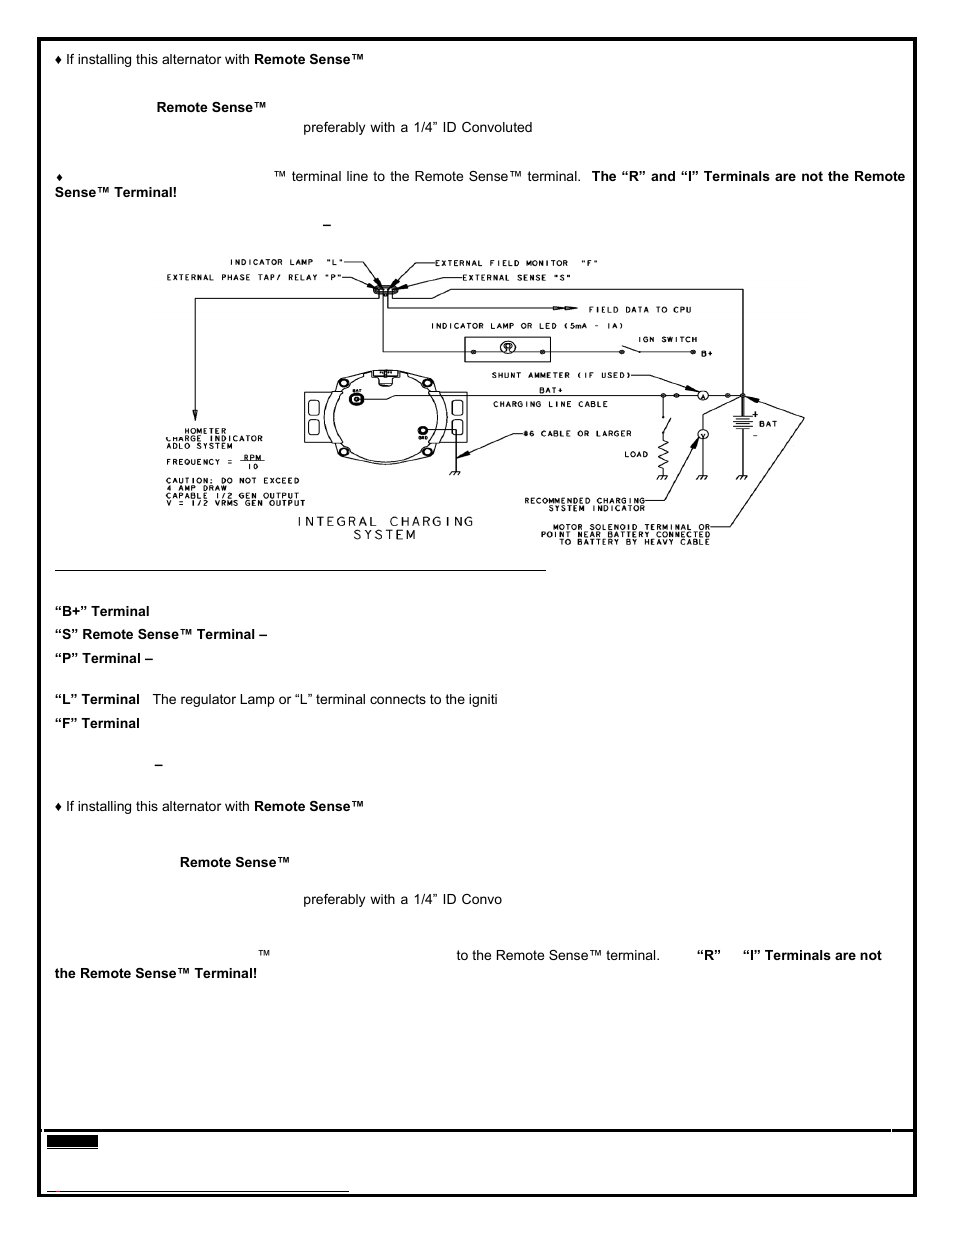 remy 28si™ alternator user manual | page 3 / 6 | also for: 24si™ alternator